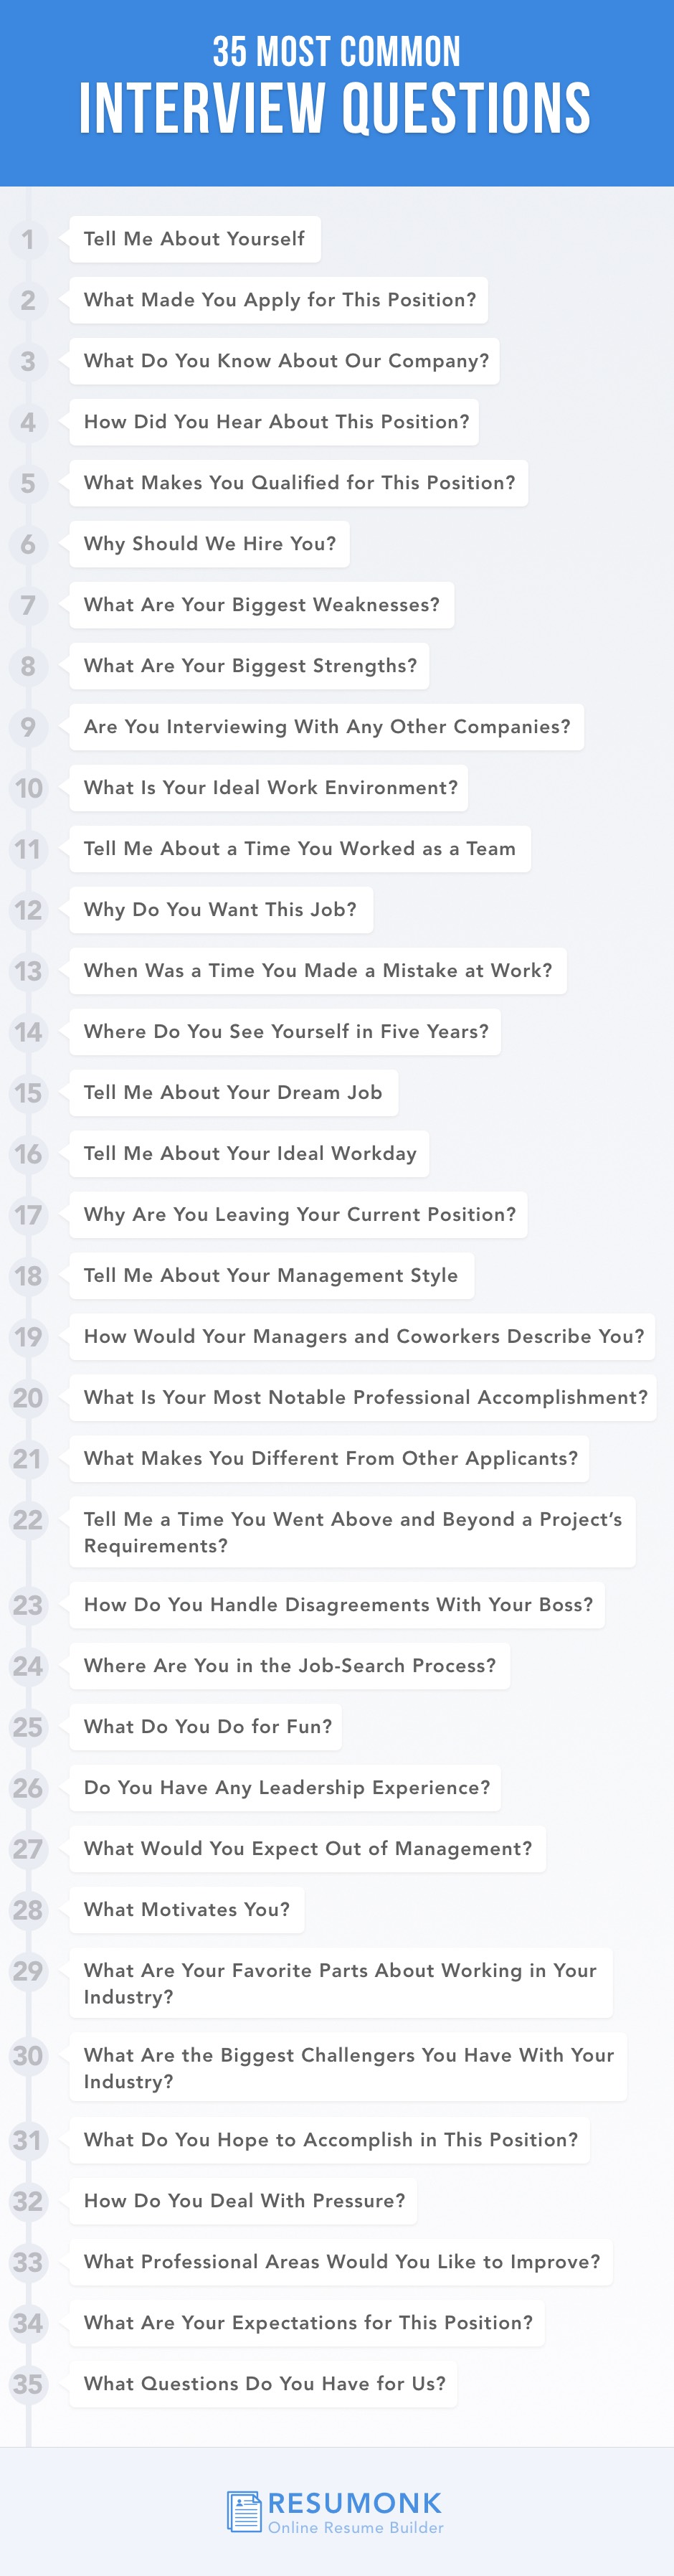 Cake Decorating Job Interview Questions : Easy Resume Builder App Resume Free Builder Online Ffa ...